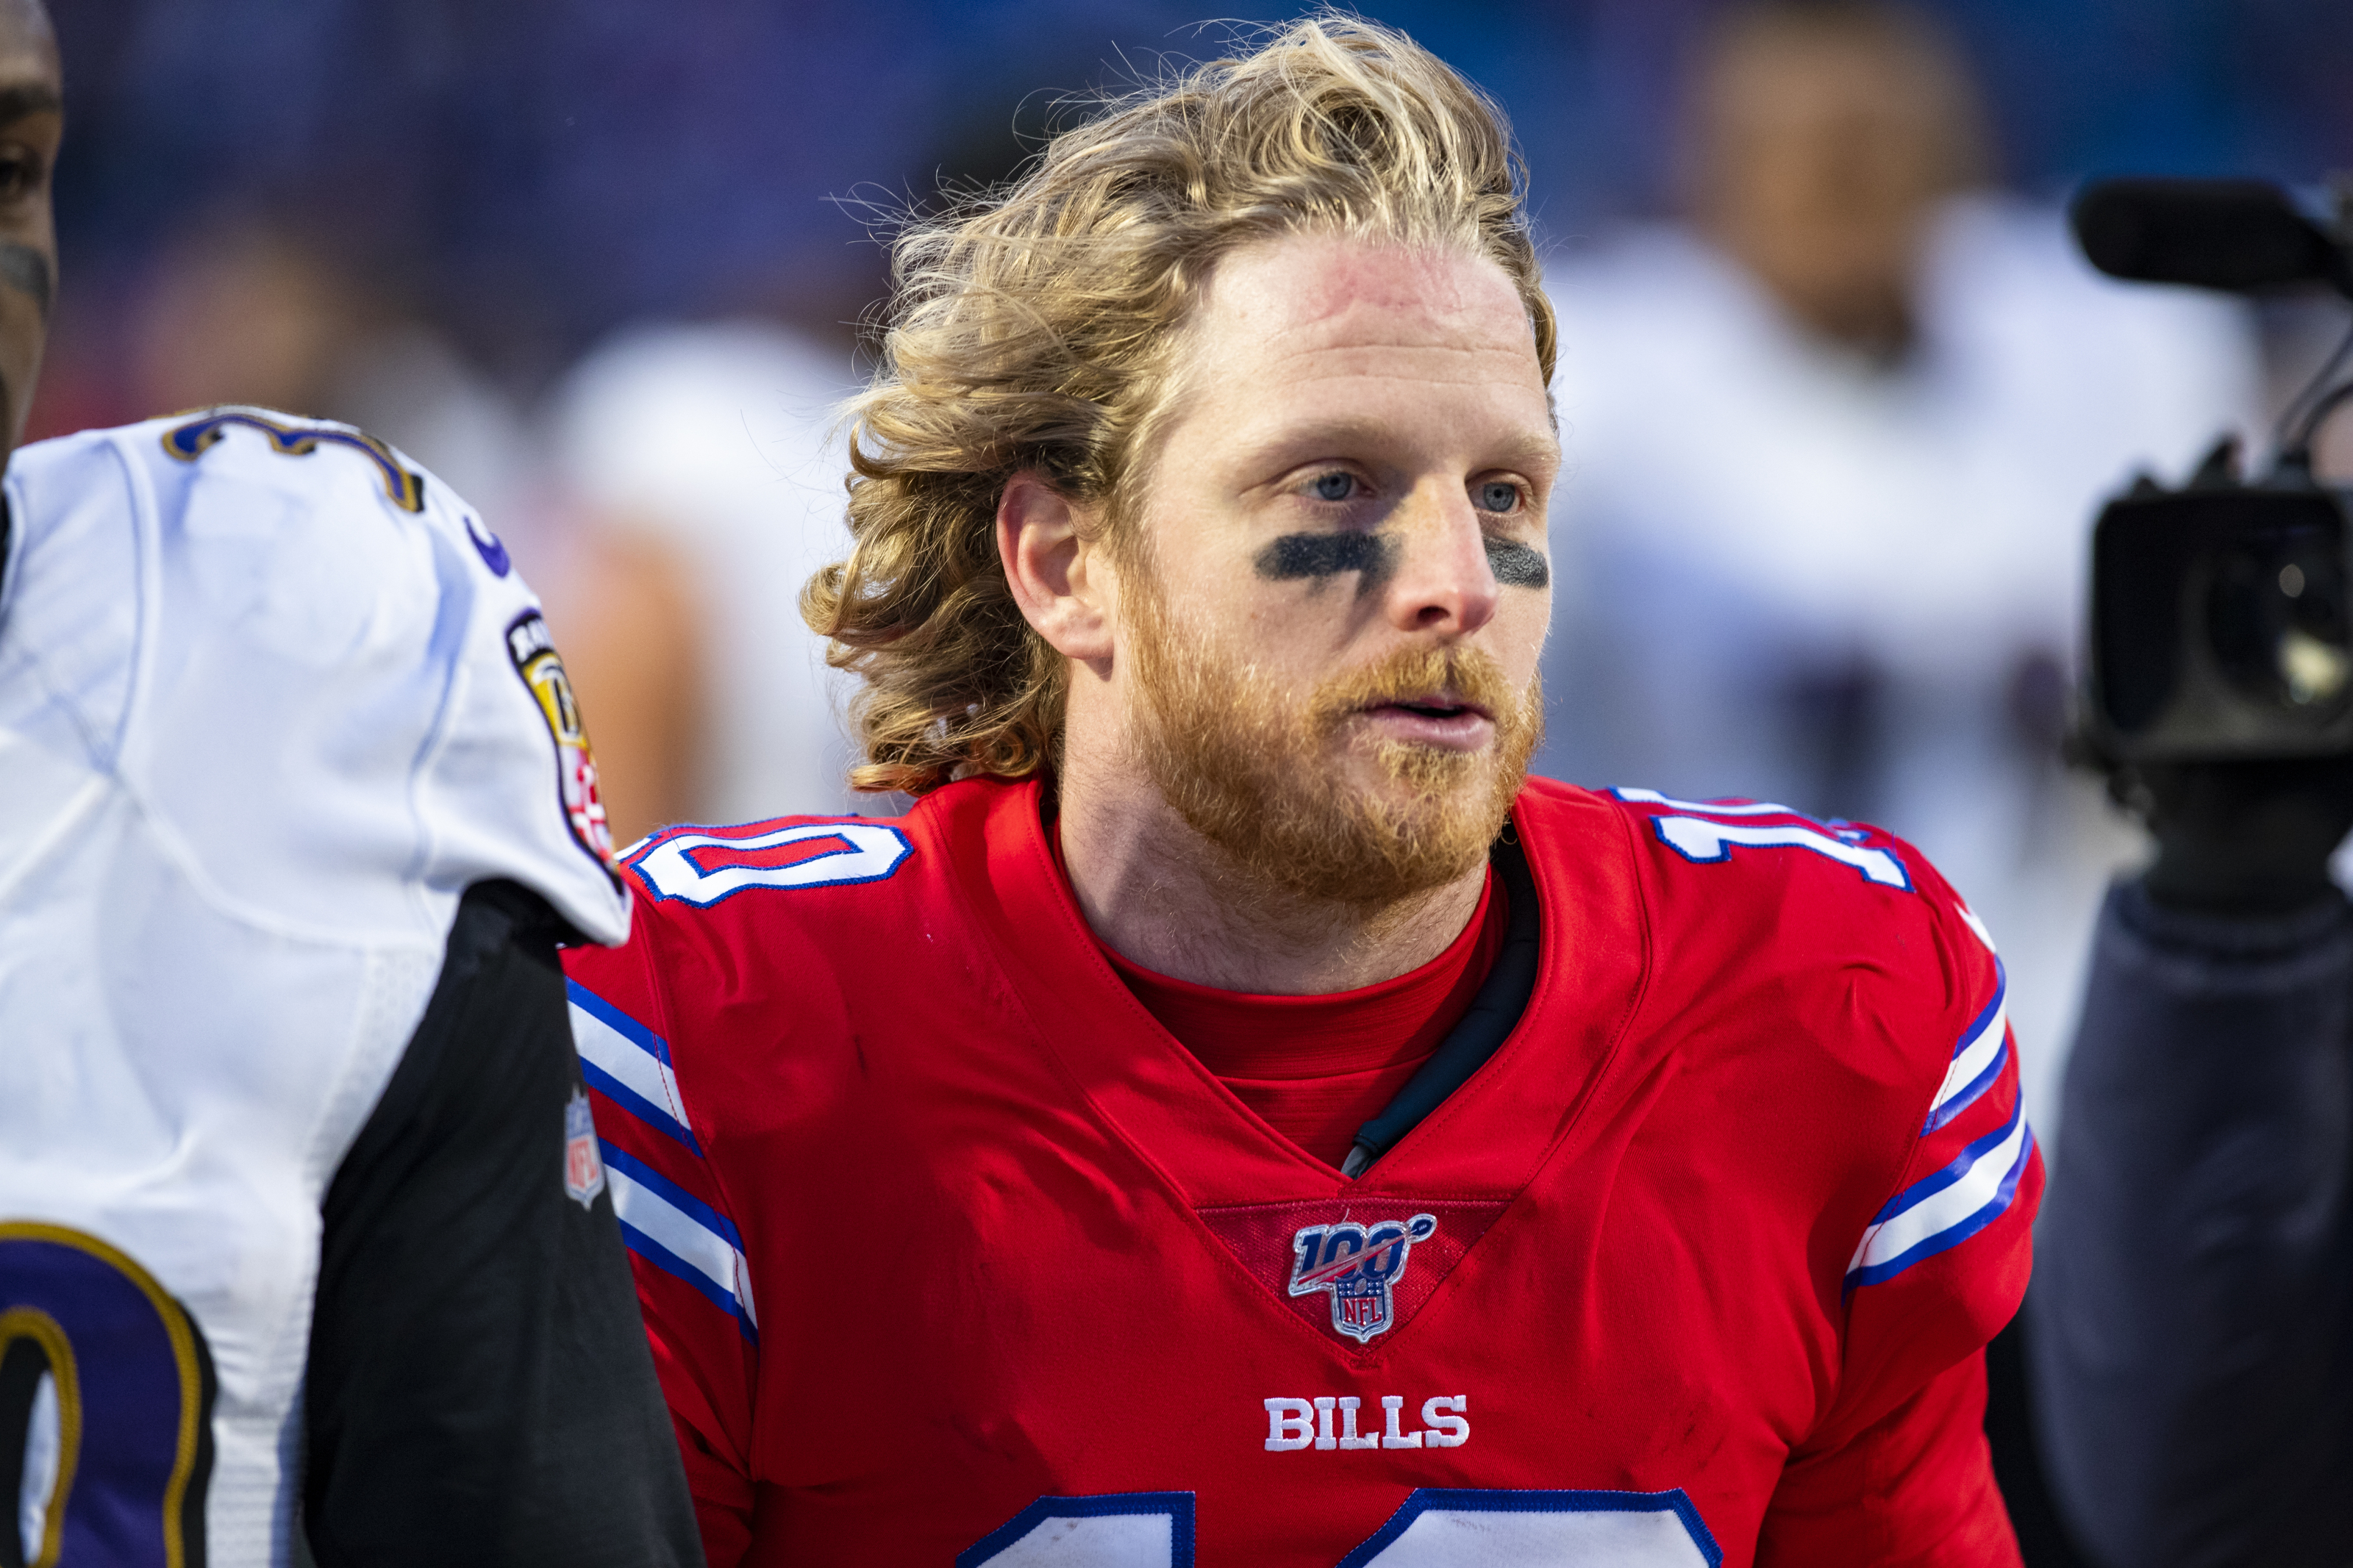 Cole Beasley Admits He Looked The Other Way For Too Long Embraces Blm